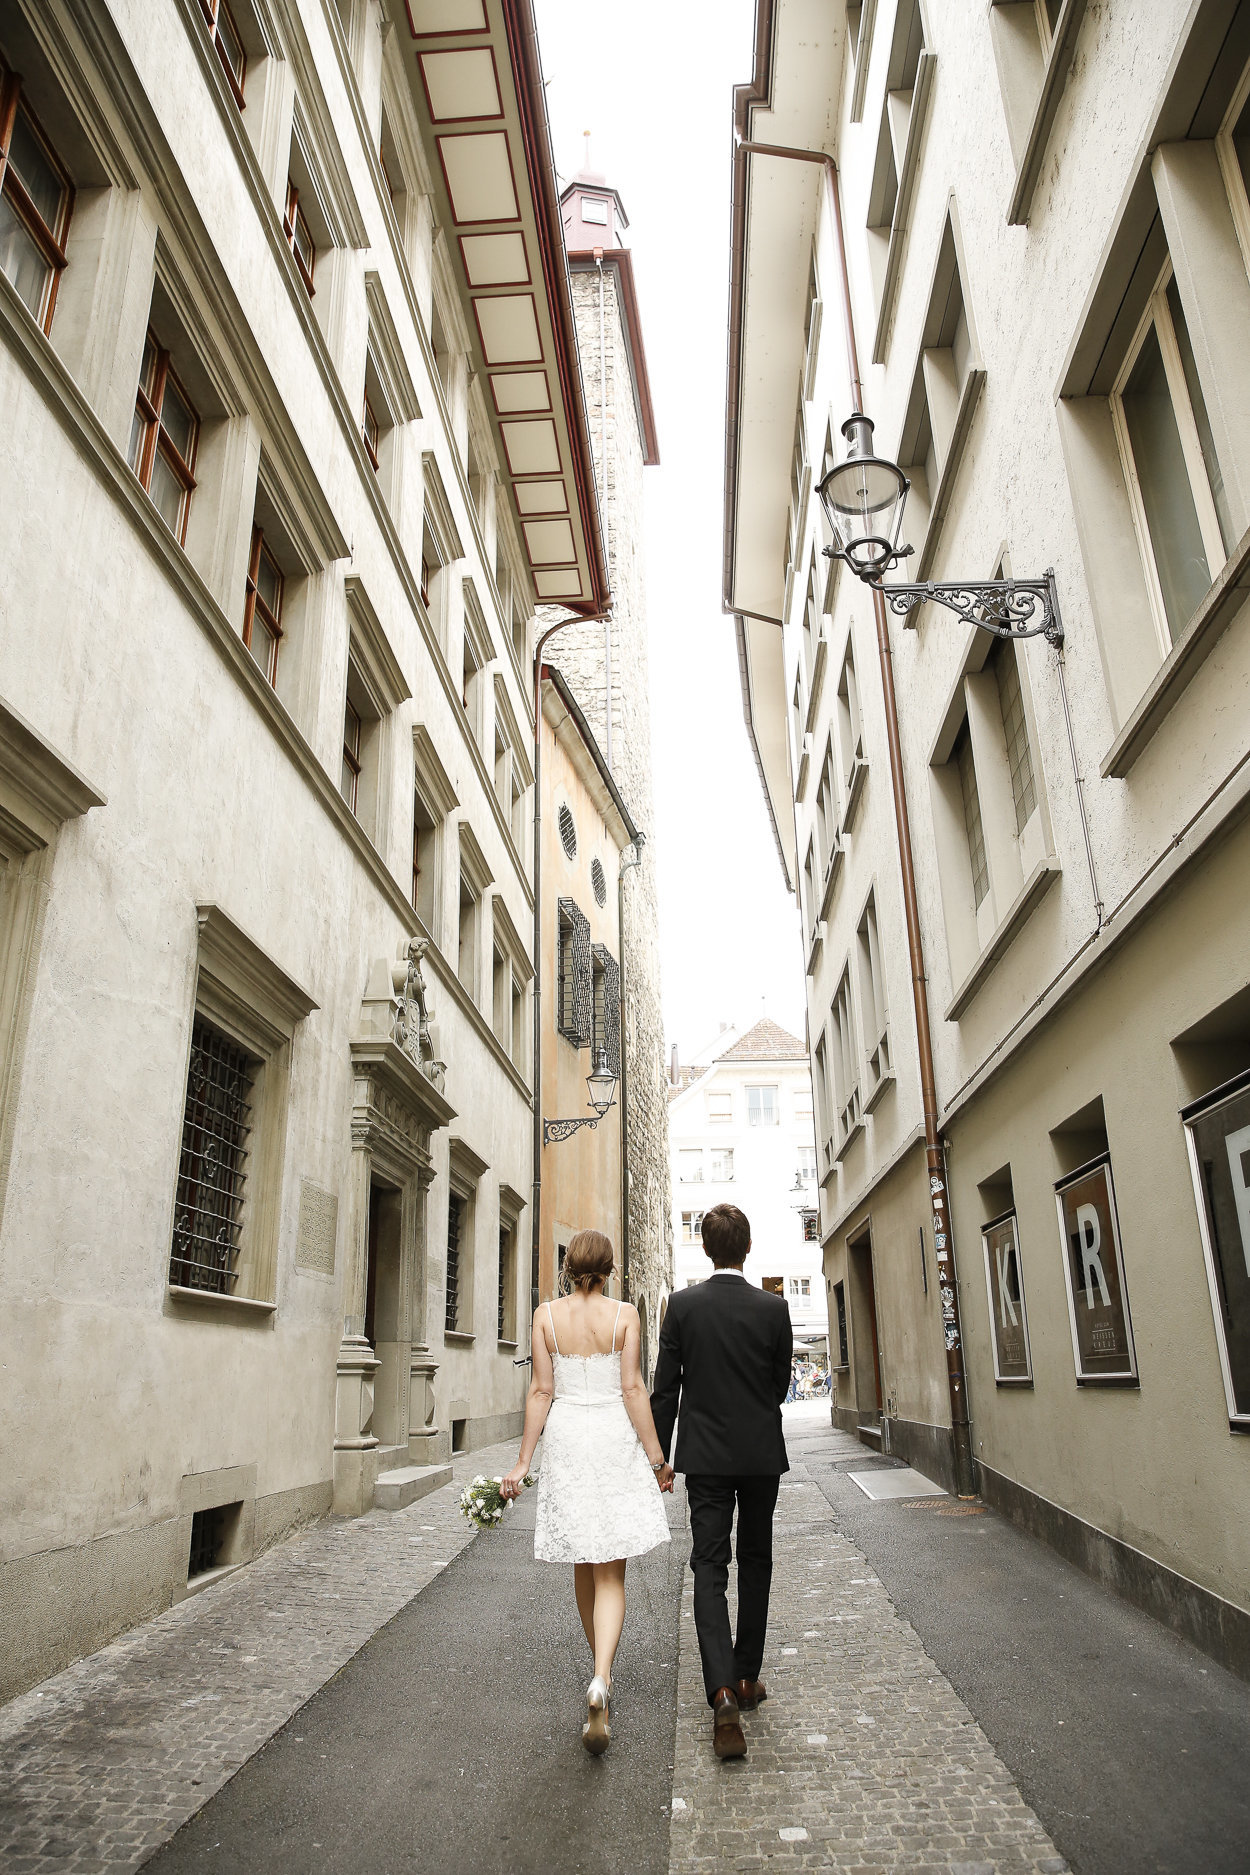 Luzern Lucerne wedding couple